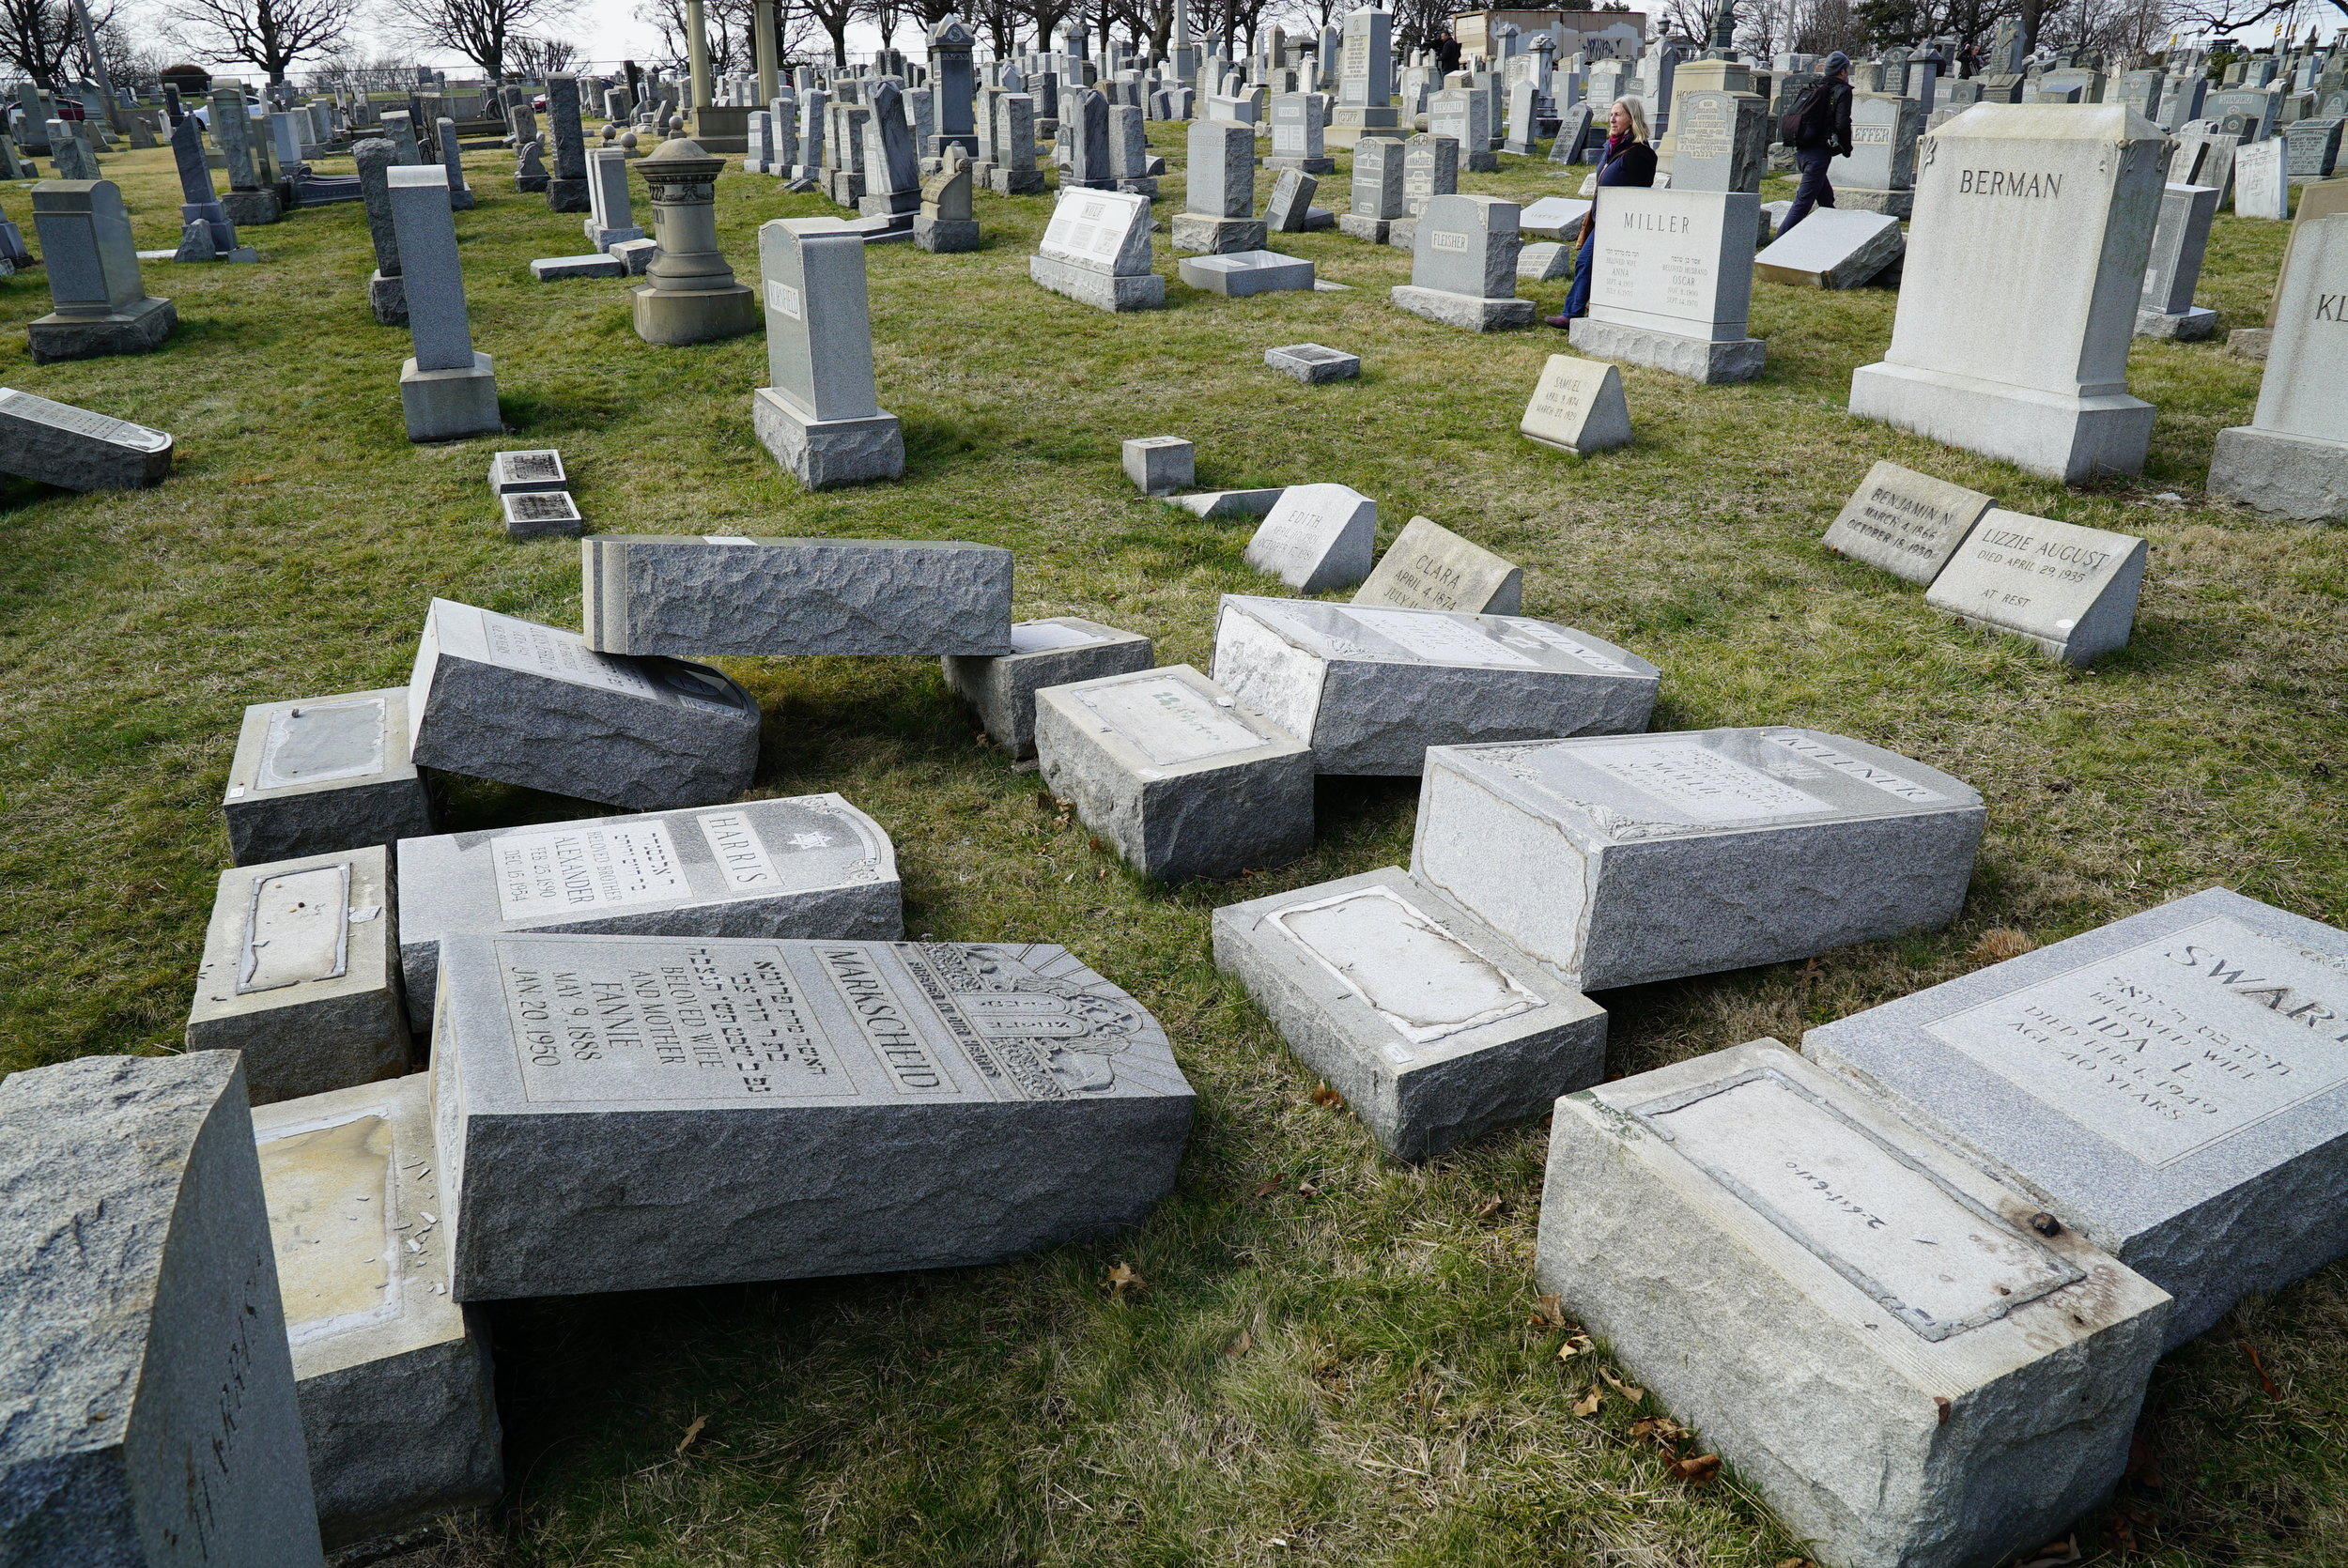 Vandal damage at Mount Carmel Cemetery in Philadelphia. These are thick, extremely heavy stones.